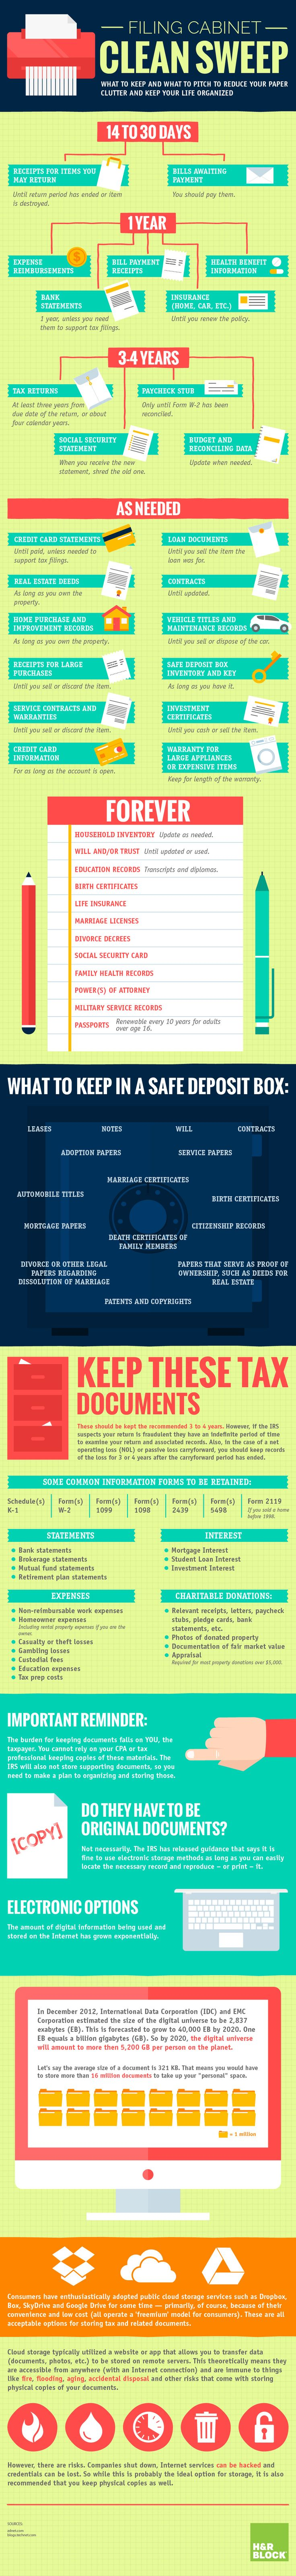 This guide can help you sort through the stack of documents, receipts and other papers that have piled up. Learn what to keep and what to trash.